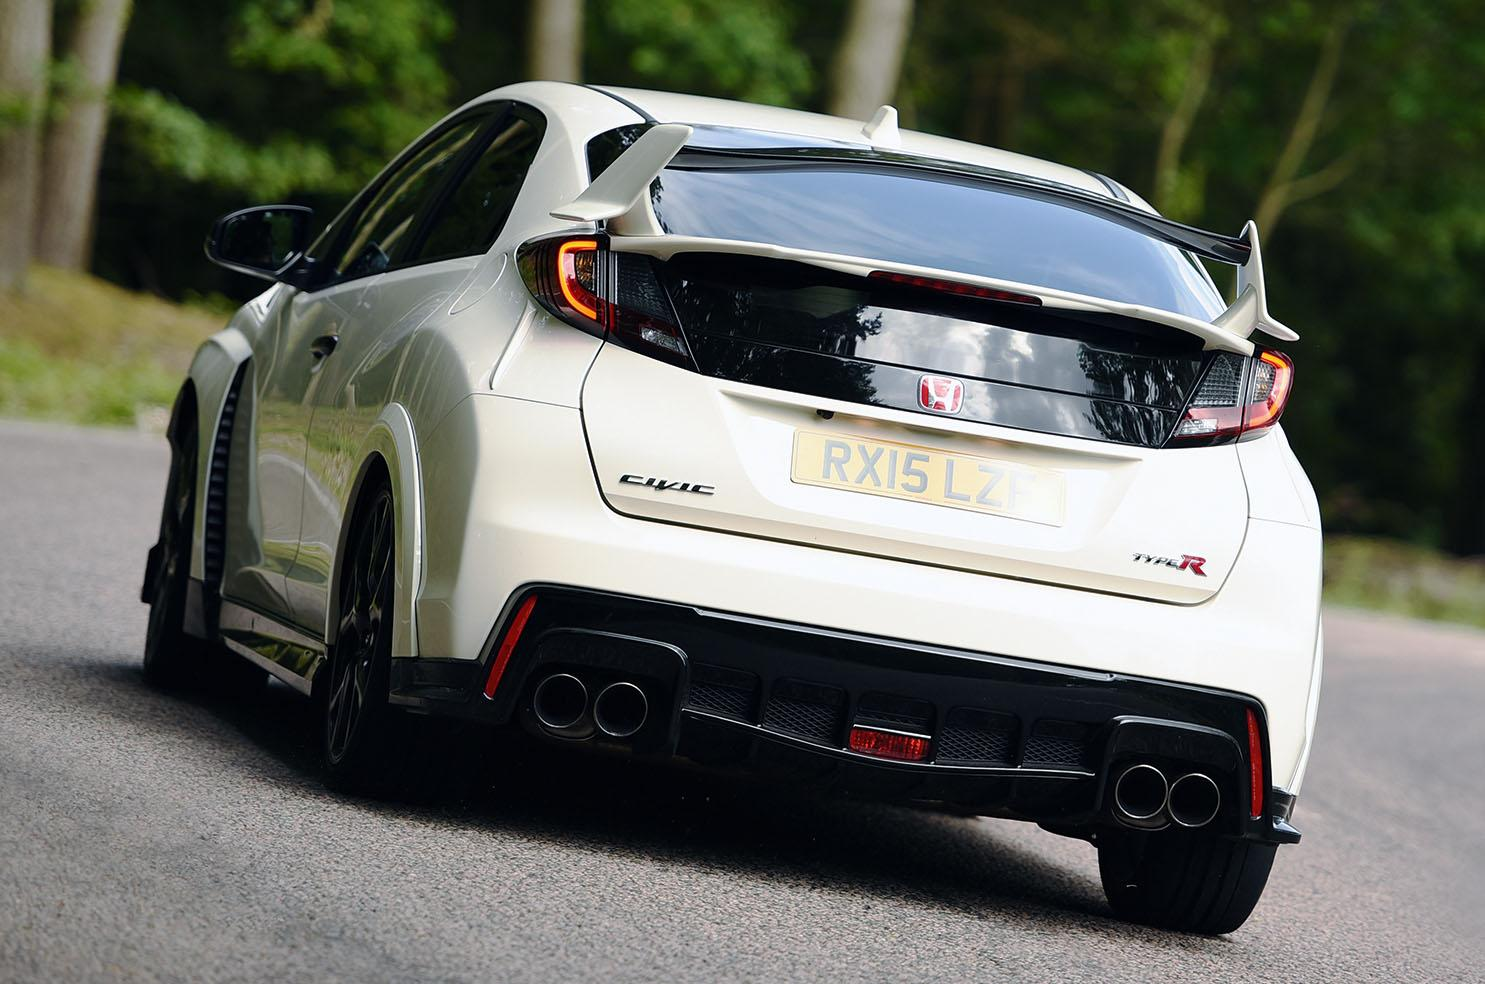 Used test: BMW M135i vs Honda Civic Type R